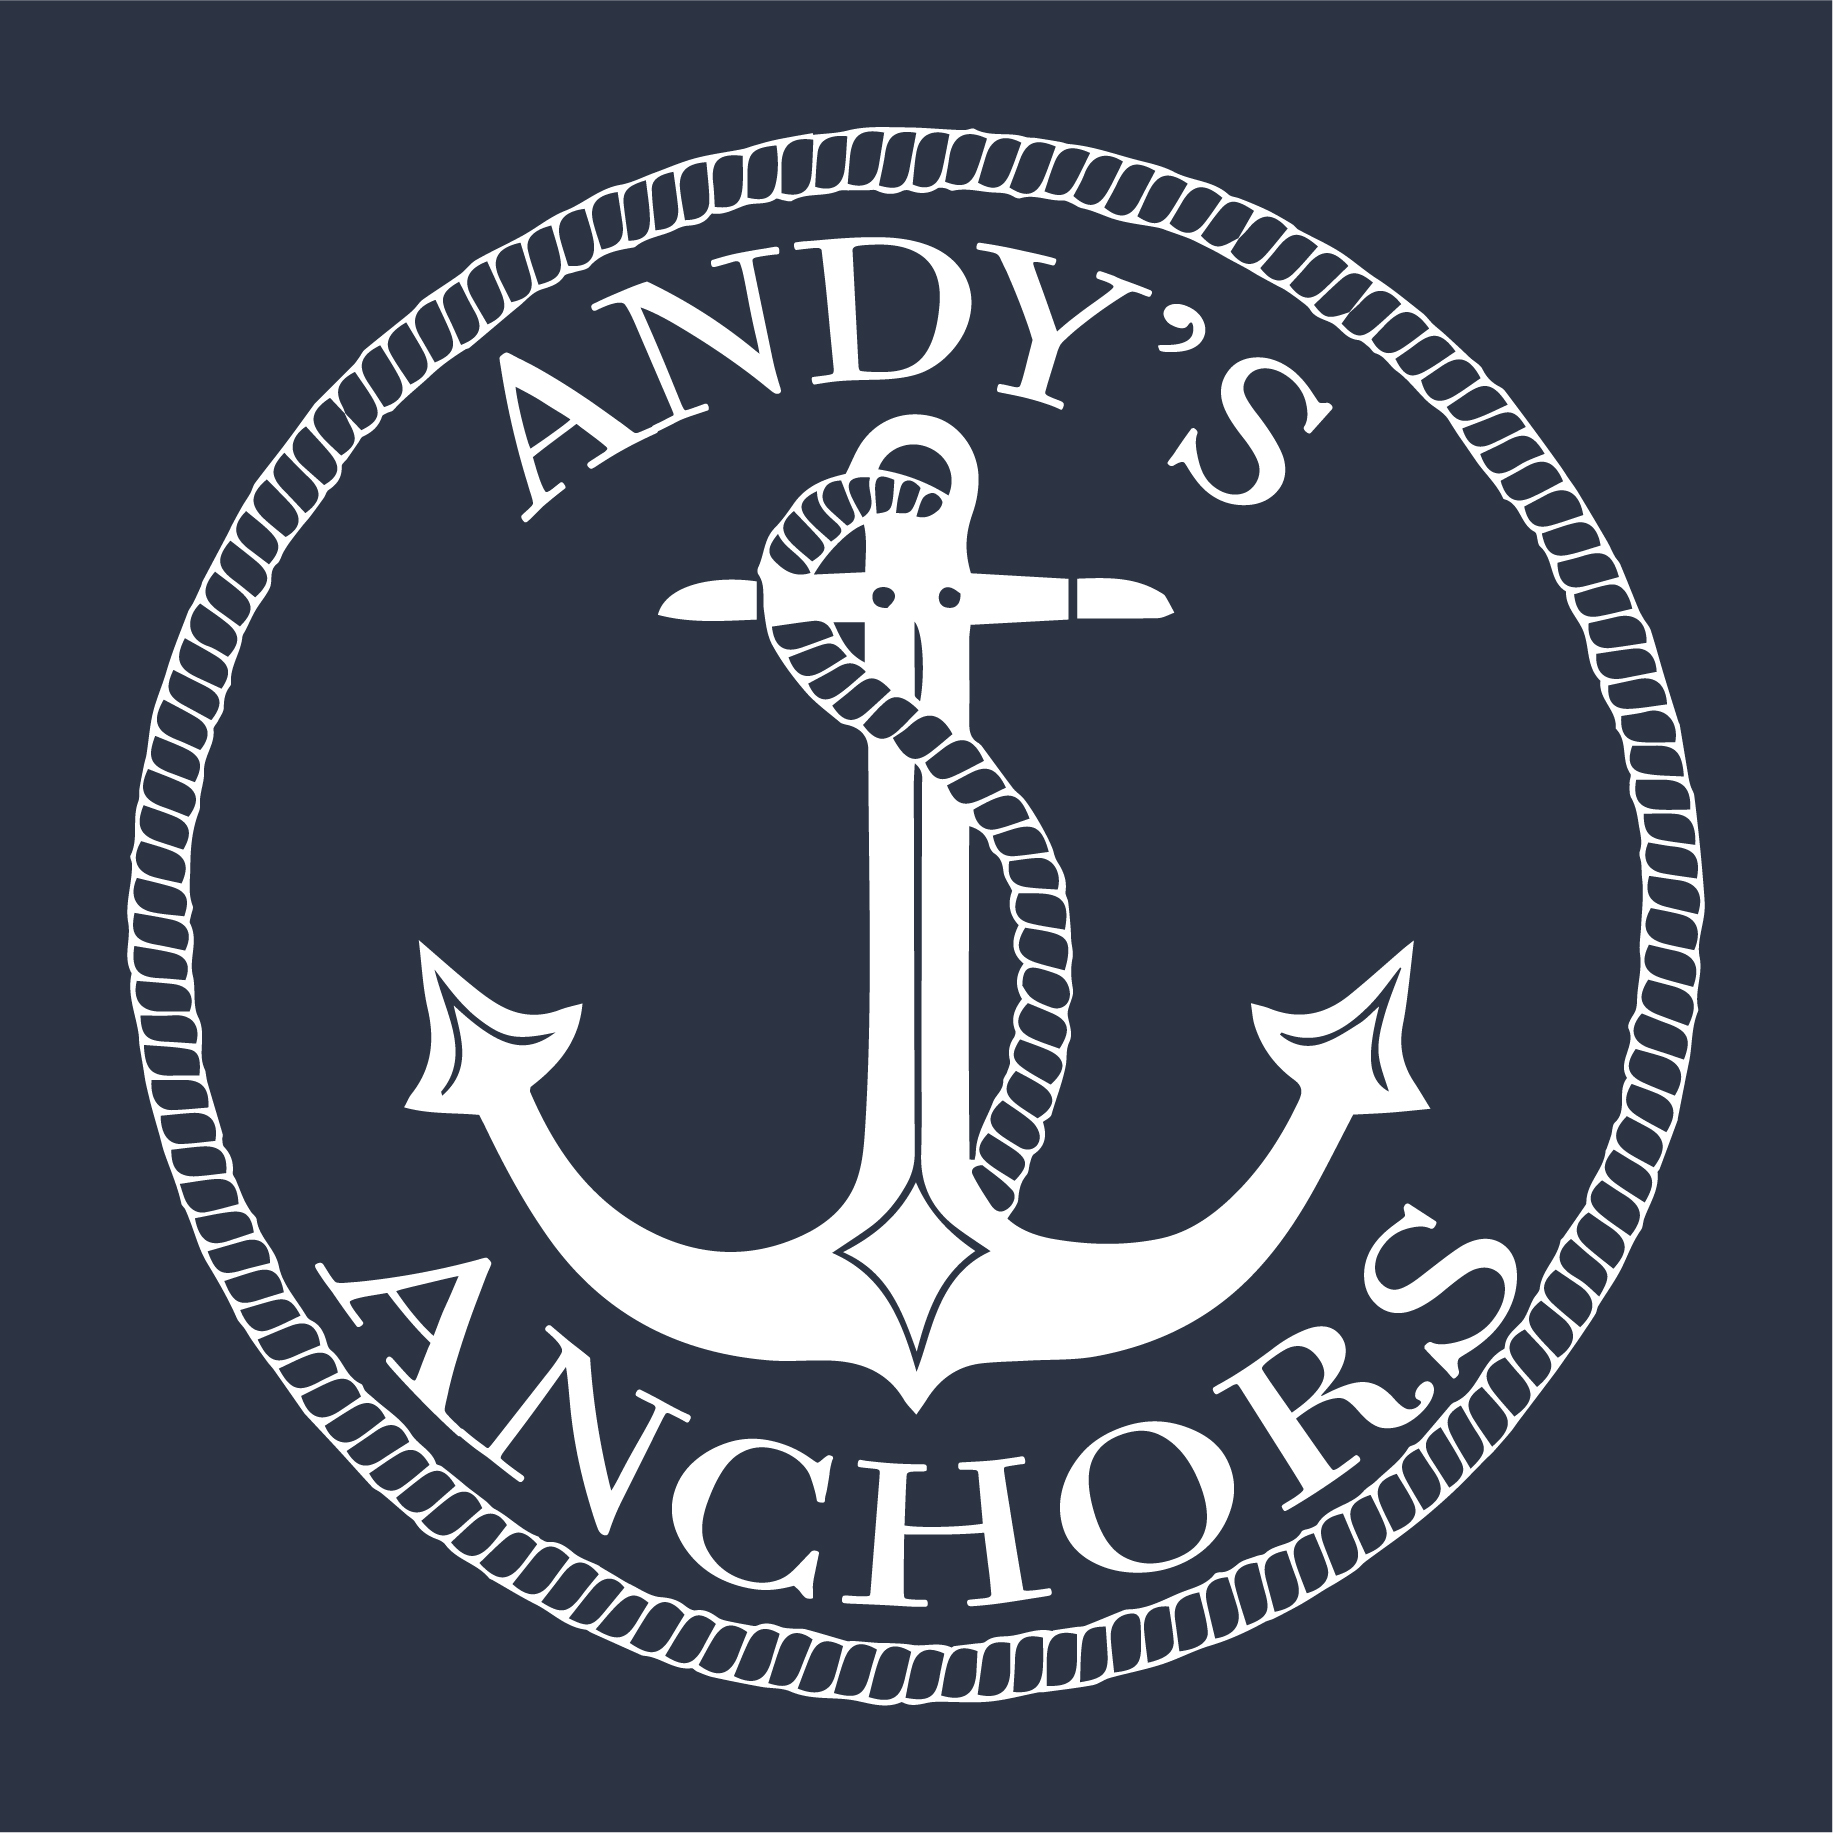 Andy's Anchors